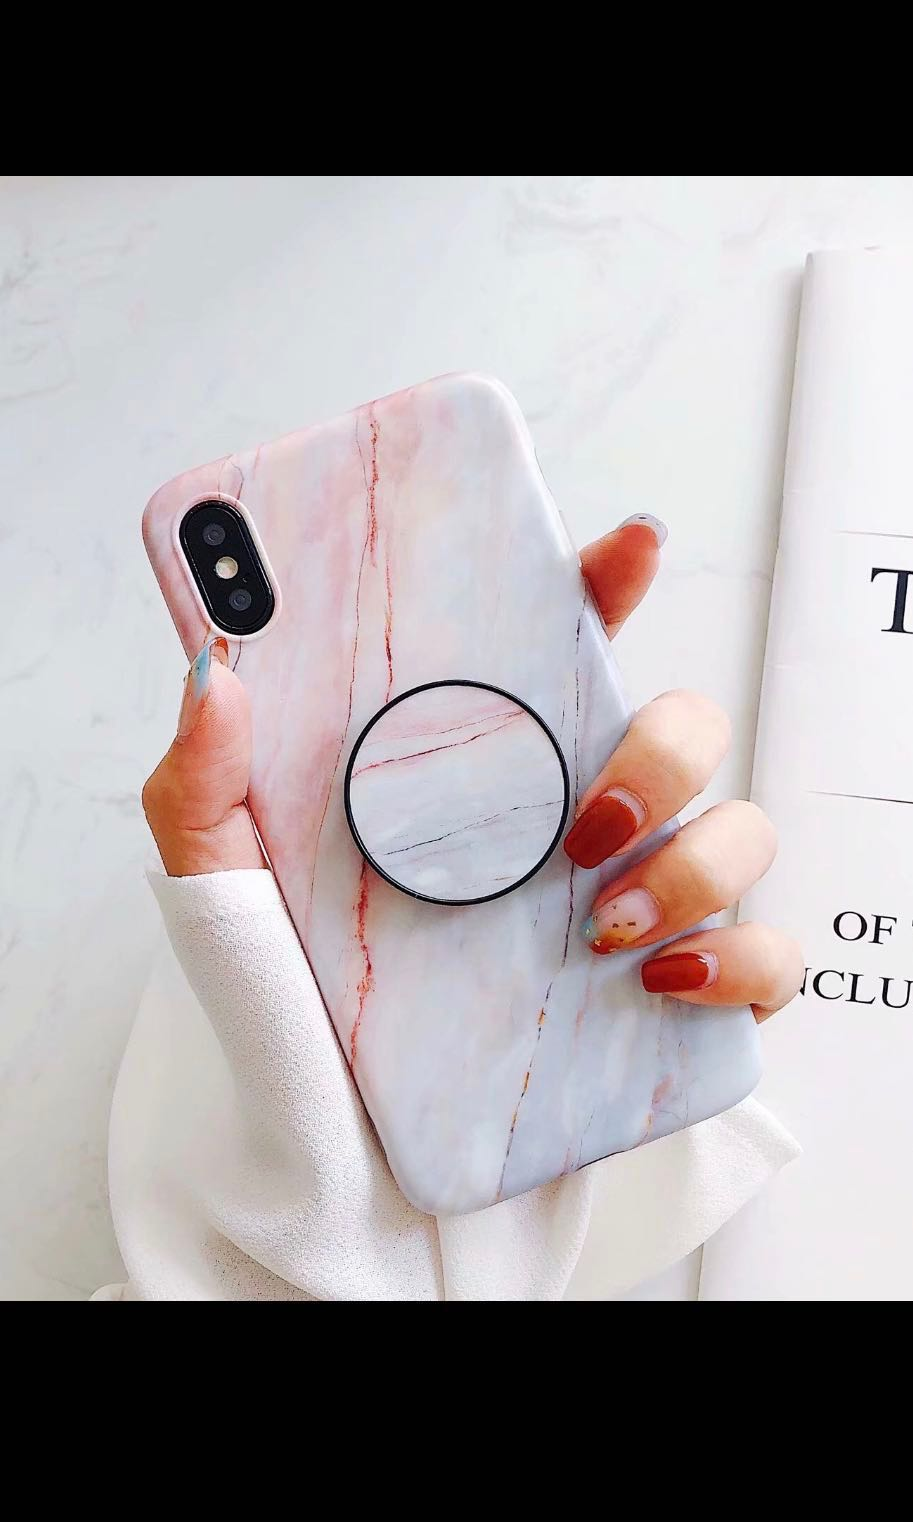 info for 5a0e3 7413e IPhone X marble pop socket case / brand new